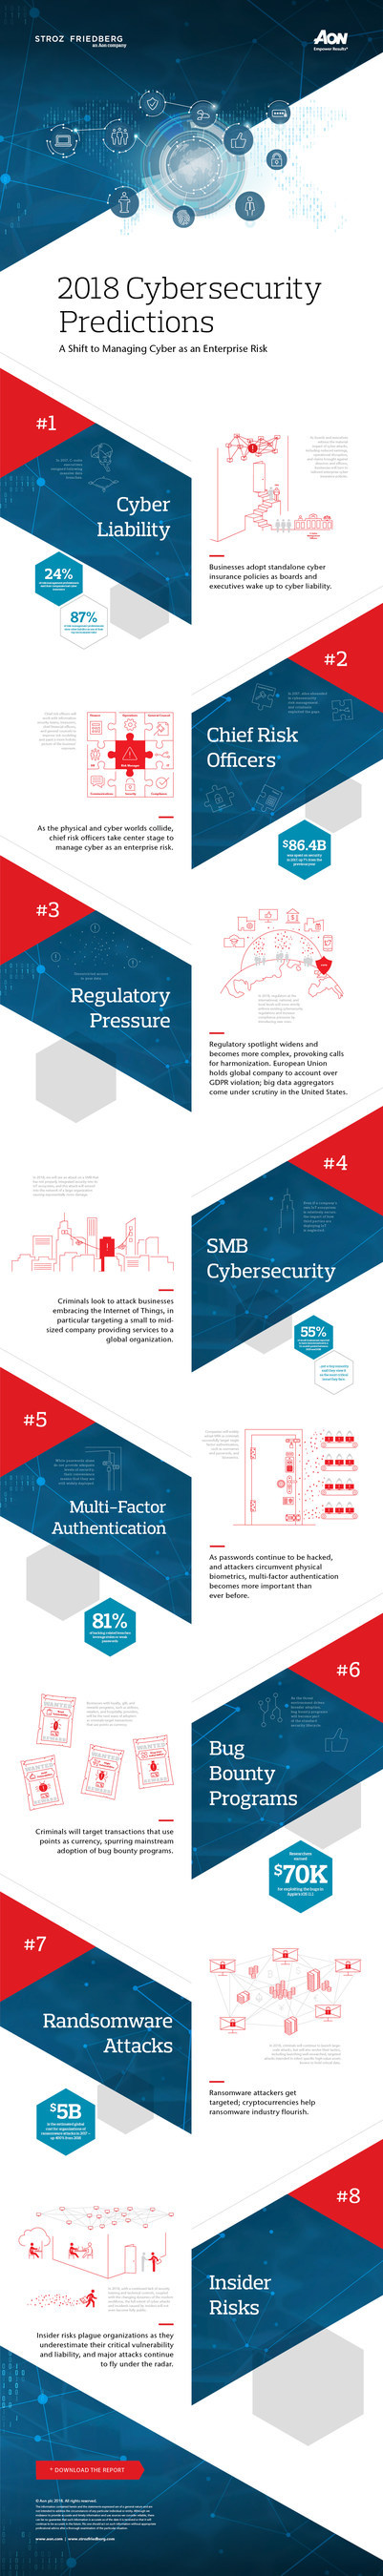 2018 Cybersecurity Predictions. A Shift to Managing Cyber as an Enterprise Risk.